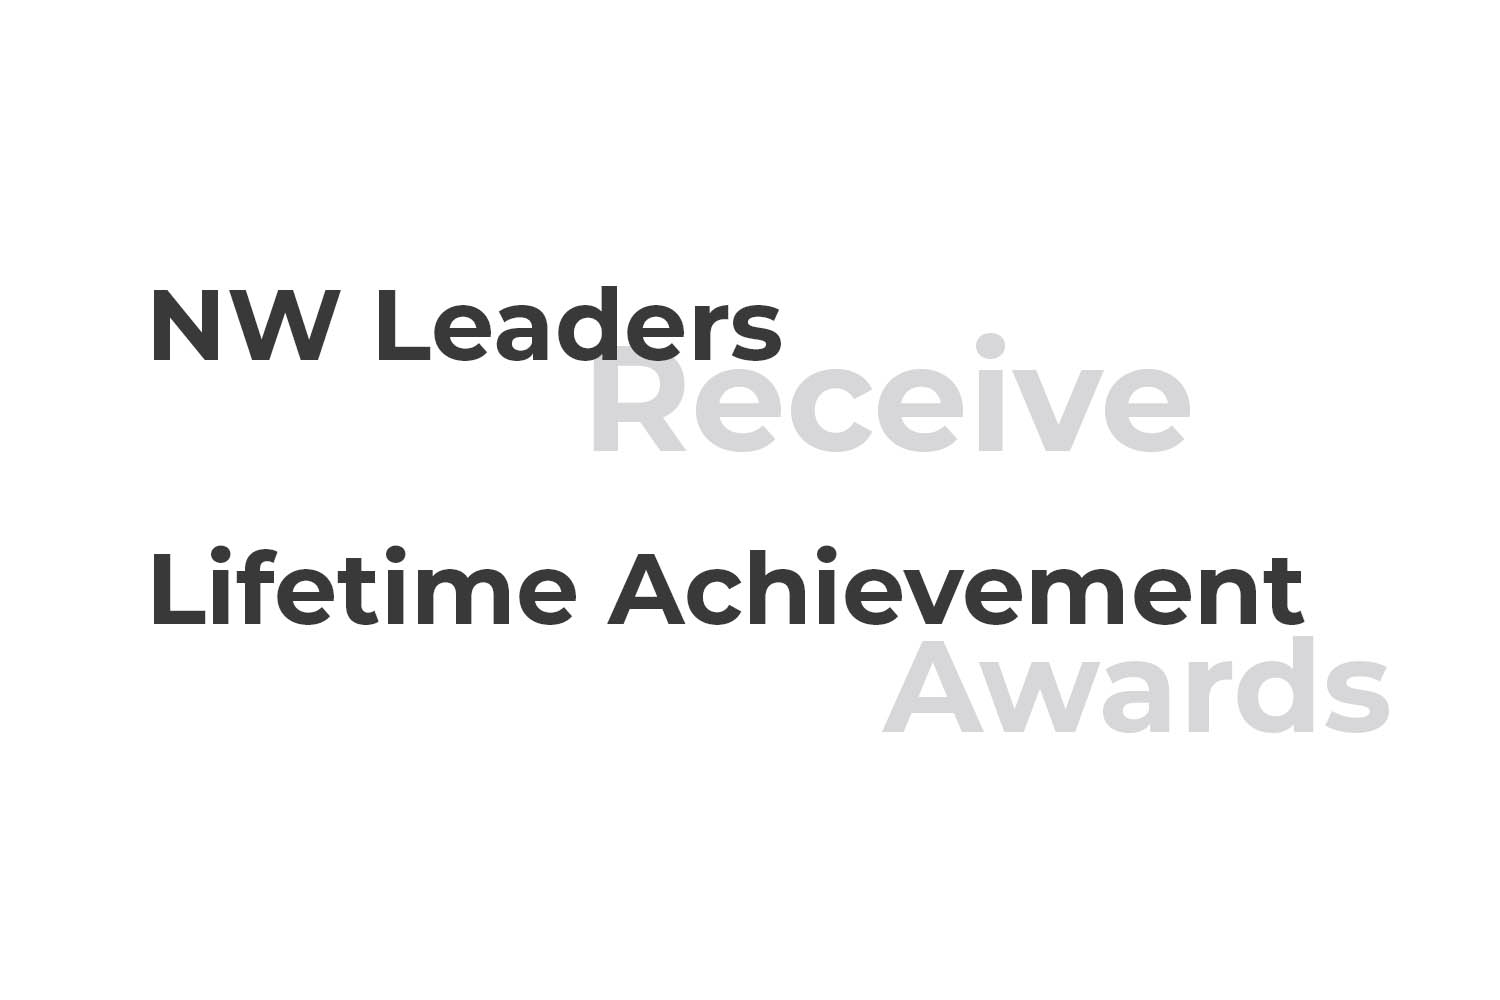 NW Leaders Receive Lifetime Achievement Awards